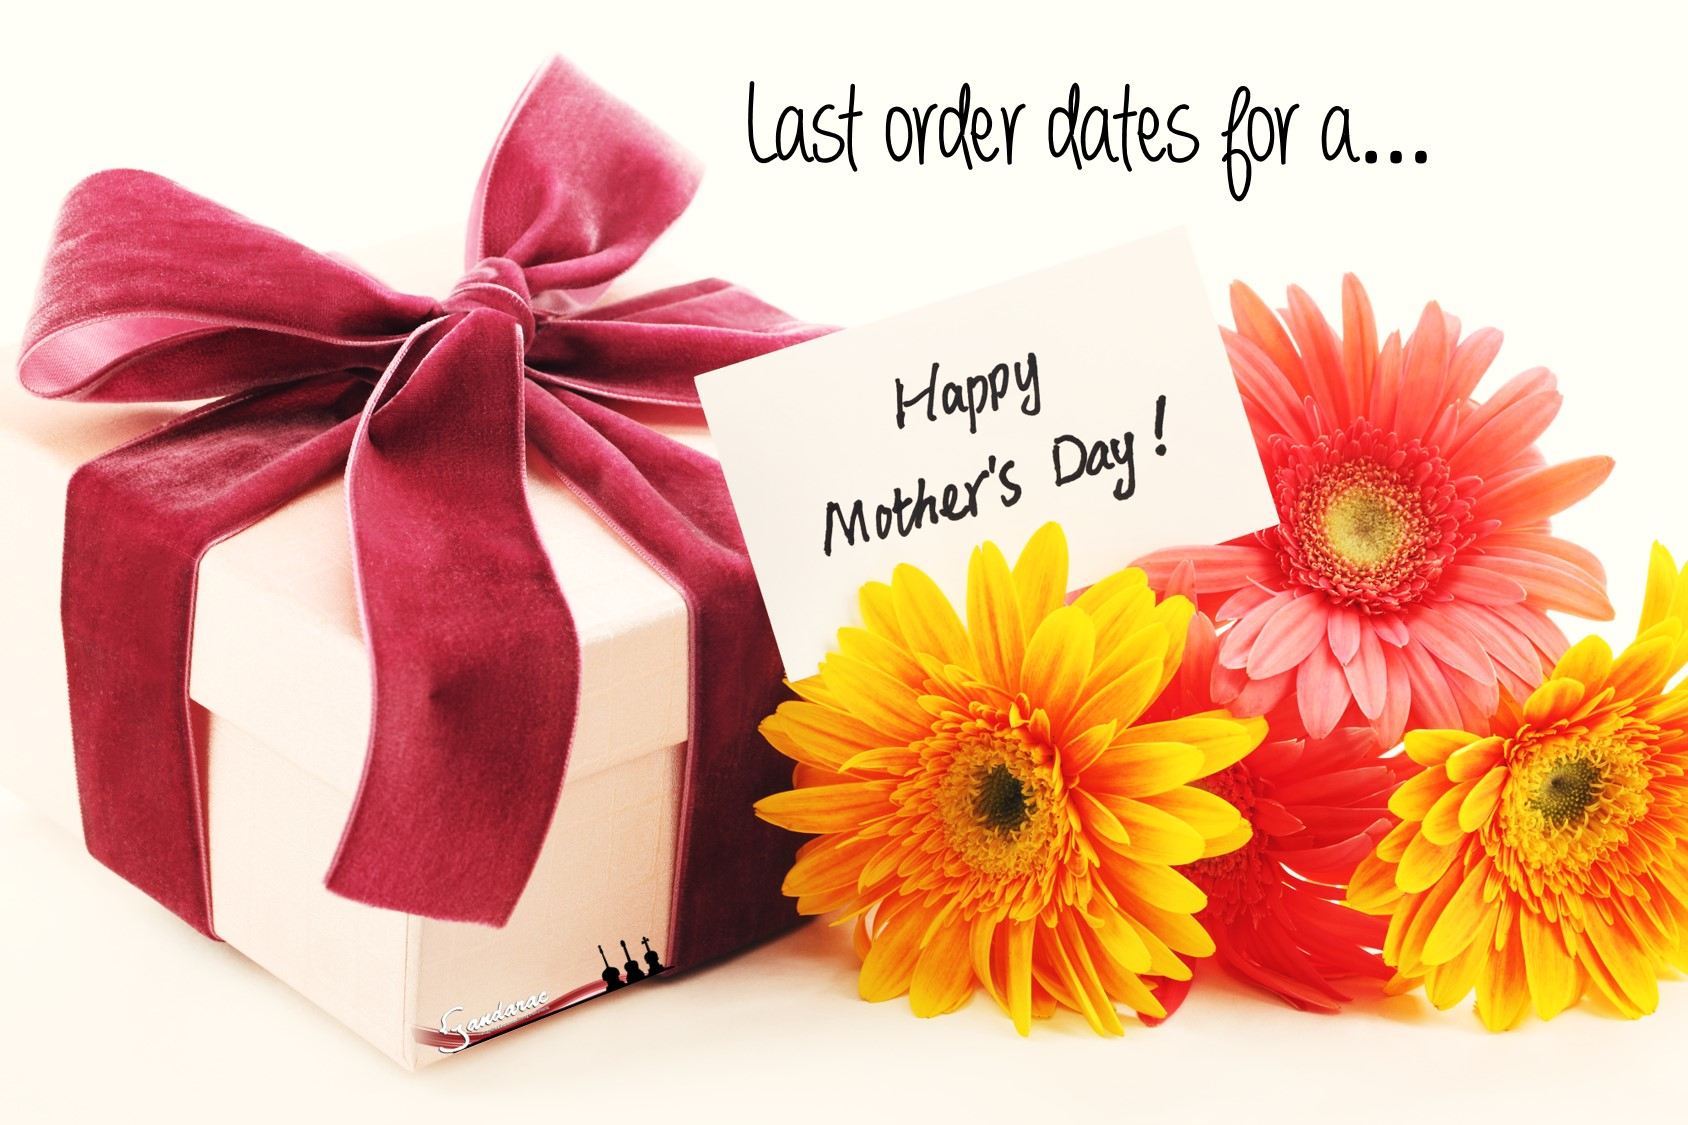 17 - mothers day